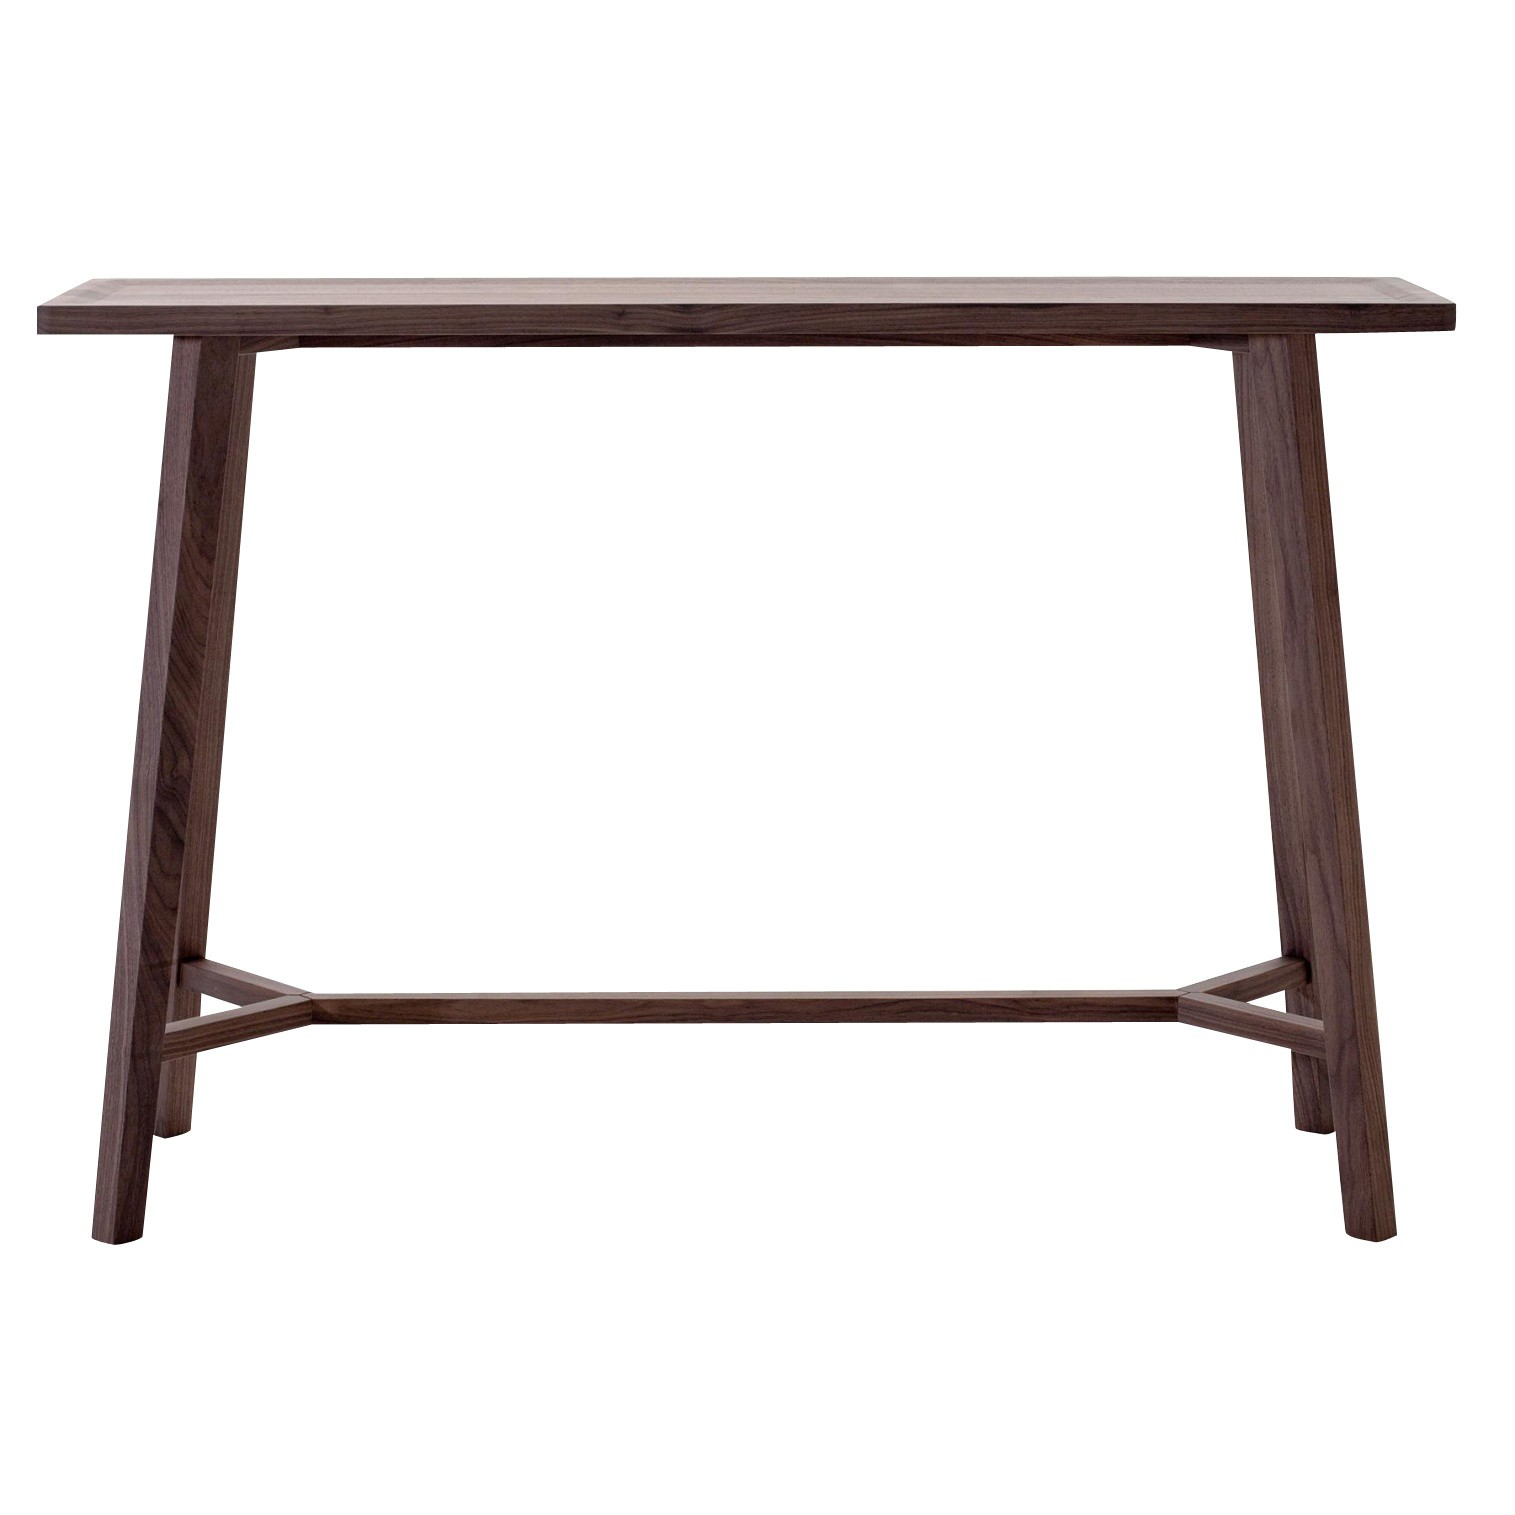 Table Extensible Exterieur Luxe Gray 61 Console